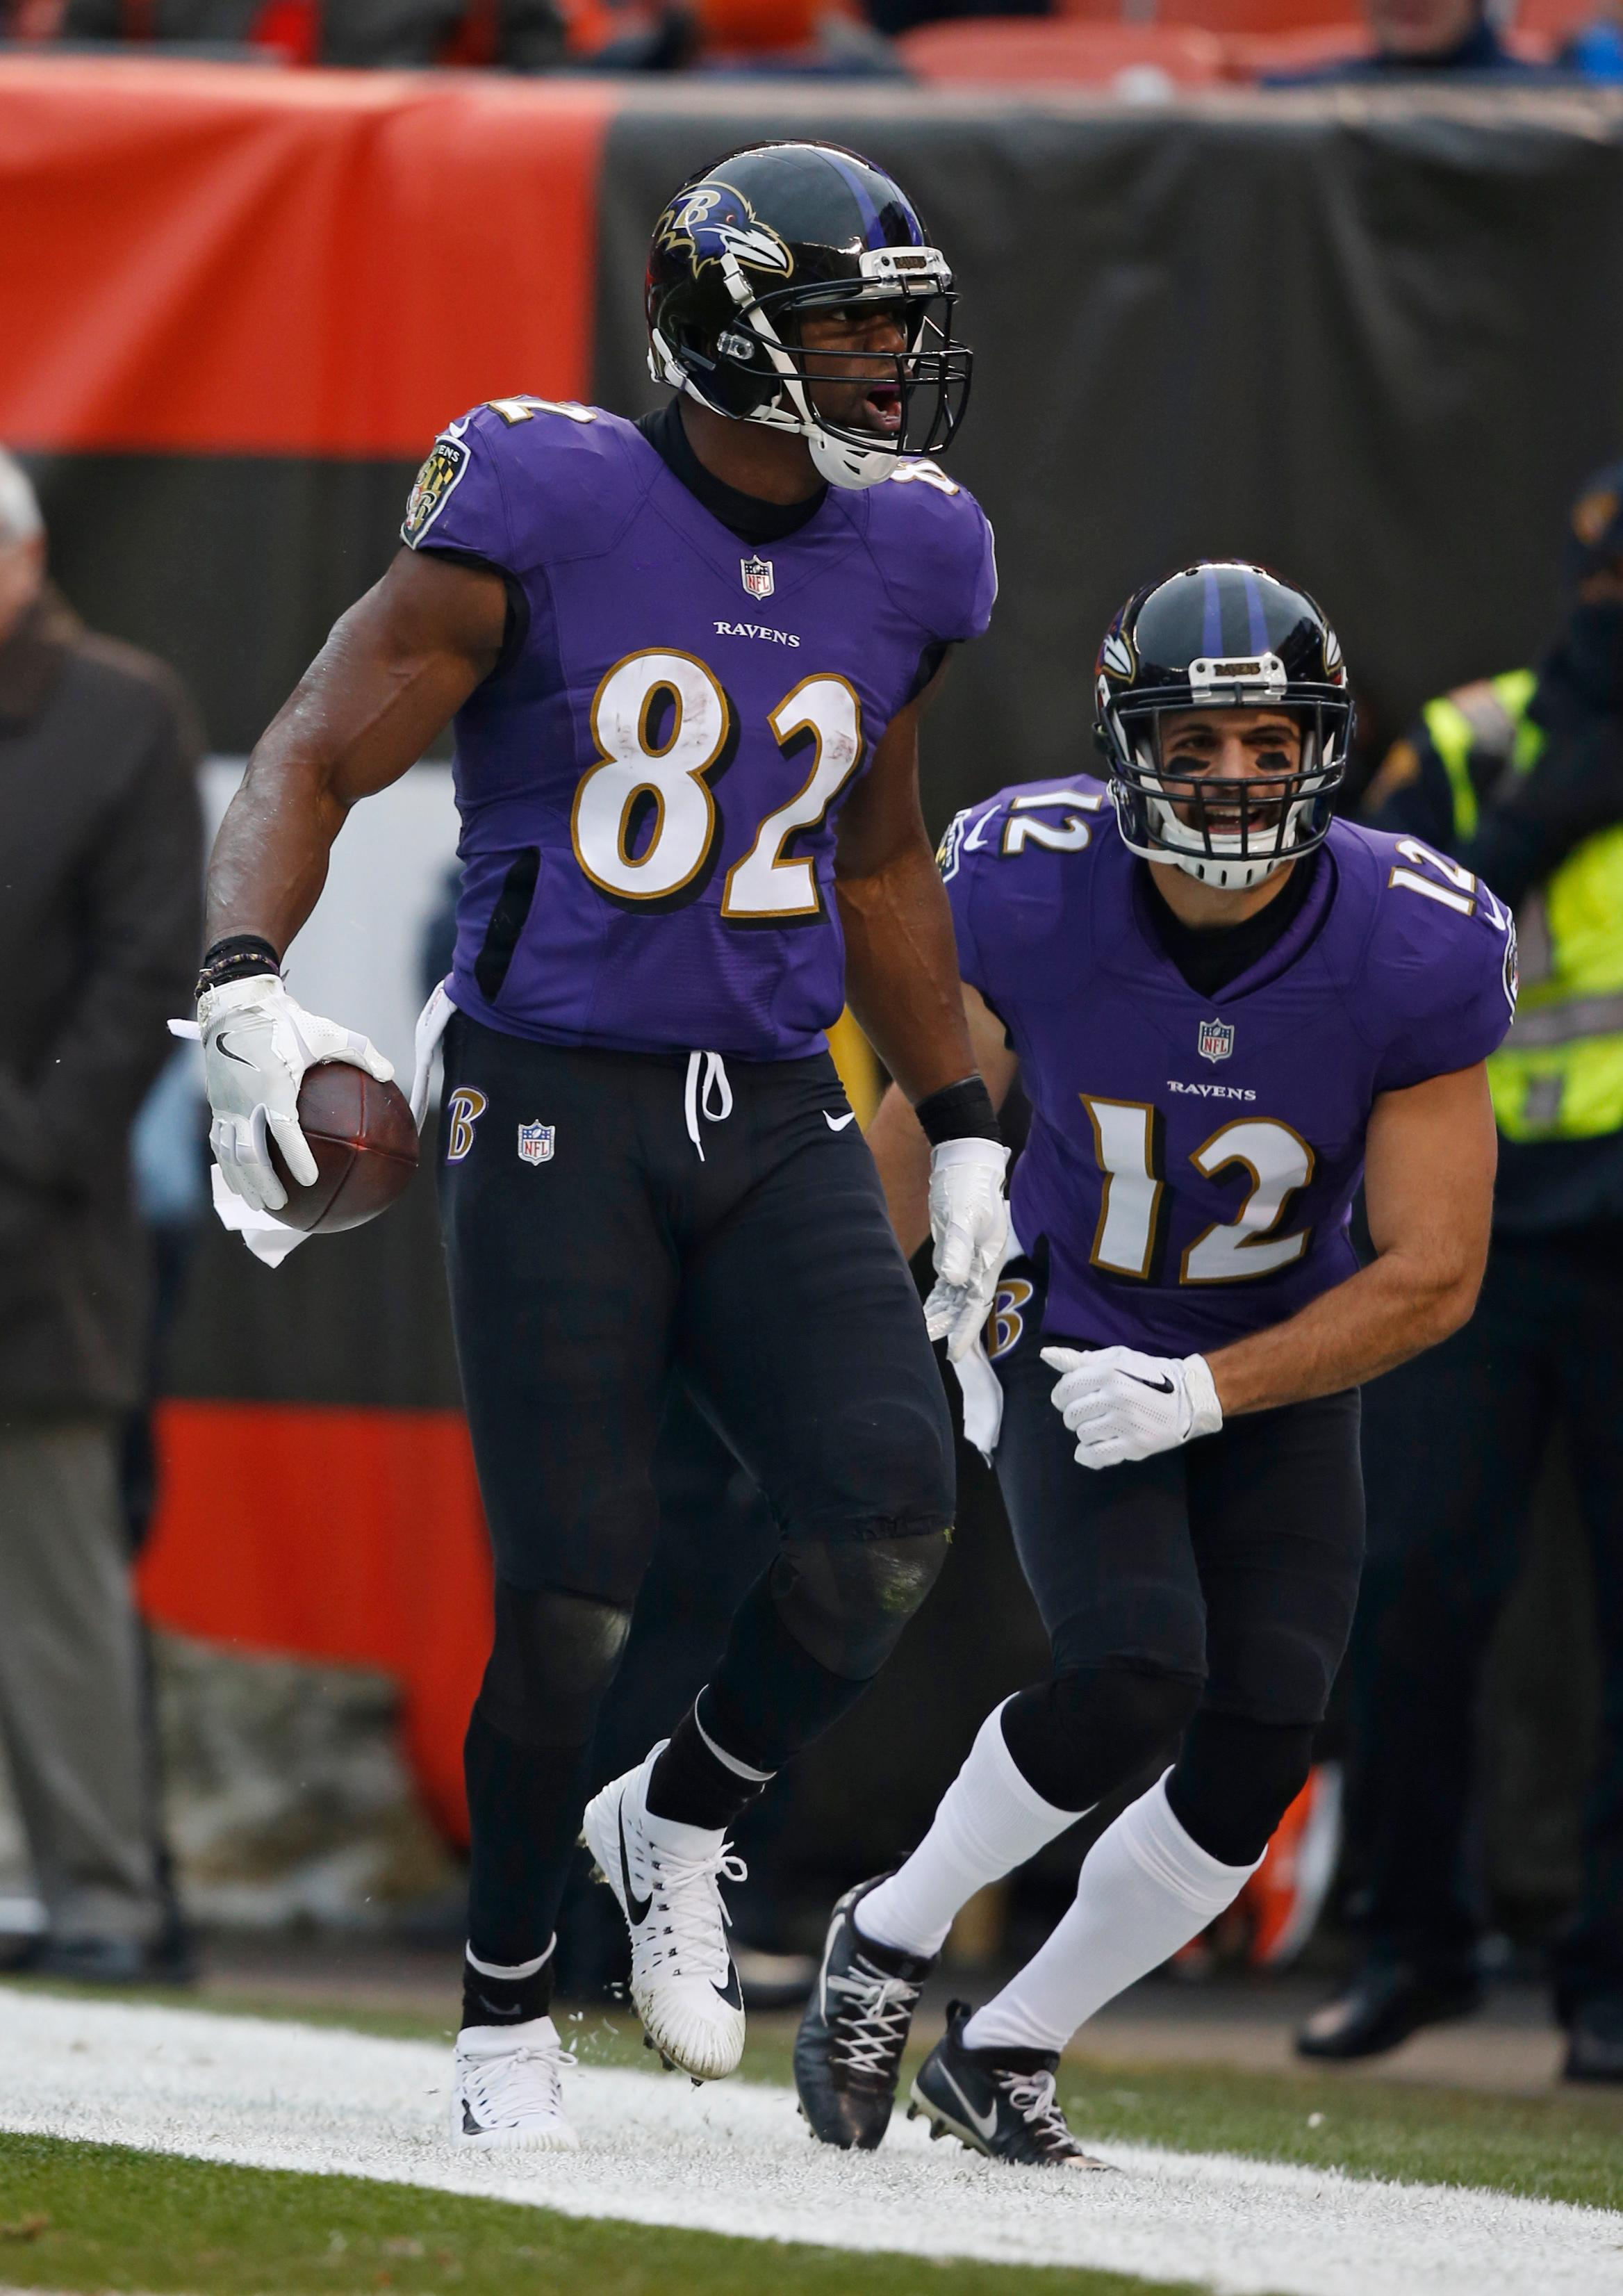 Baltimore Ravens tight end Benjamin Watson (82) celebrates after a 33-yard touchdown during the first half of an NFL football game against the Cleveland Browns, Sunday, Dec. 17, 2017, in Cleveland. (AP Photo/Ron Schwane)